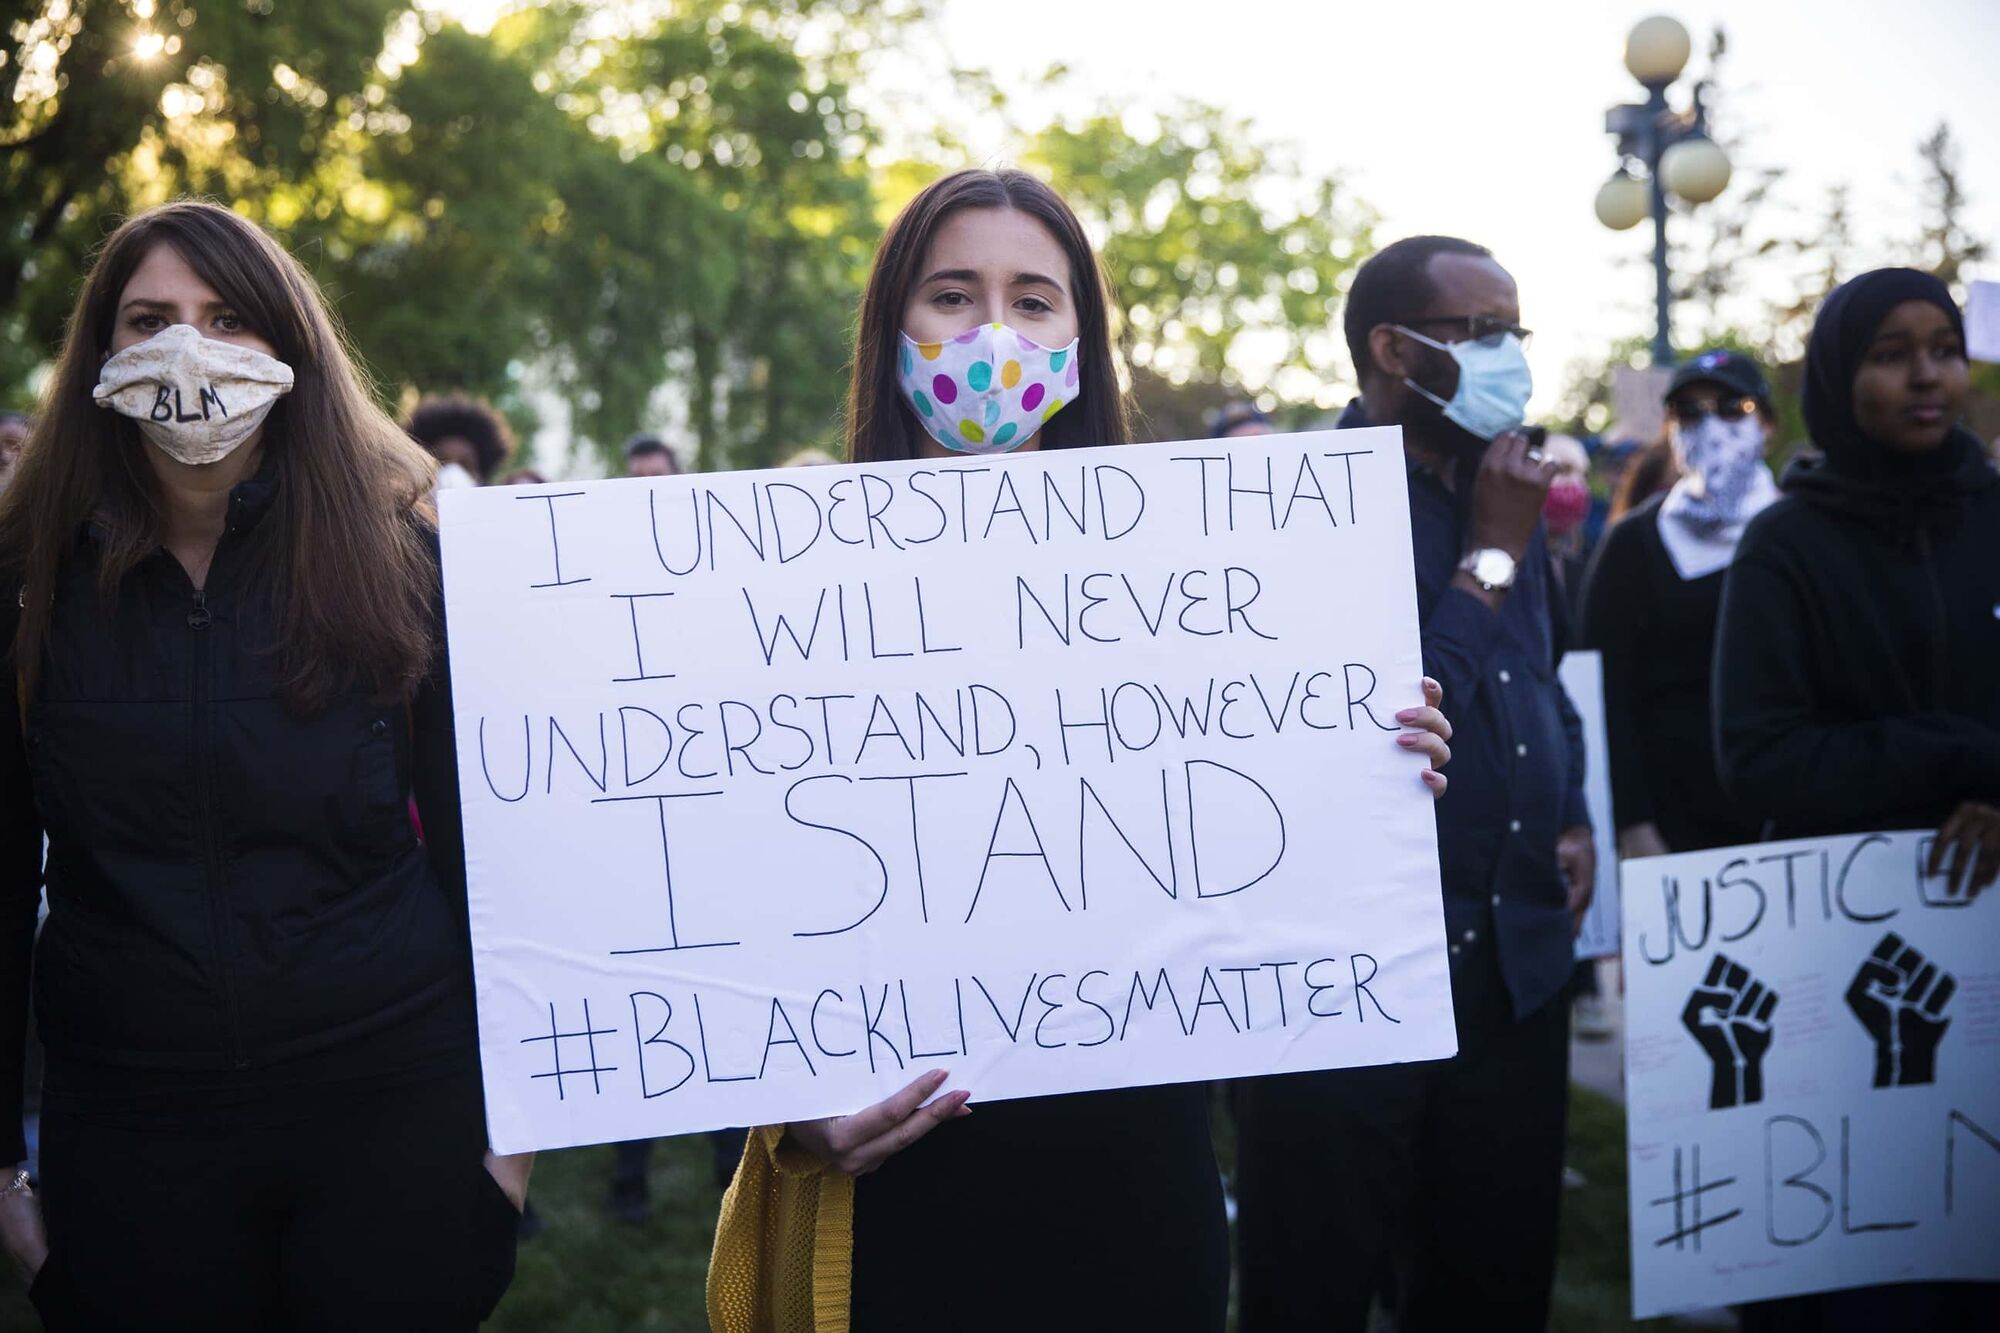 Protesters gather on the west side of the Manitoba Legislative Building for a rally in support of justice for black lives in Winnipeg on June 5. (Mikaela MacKenzie / Winnipeg Free Press files)